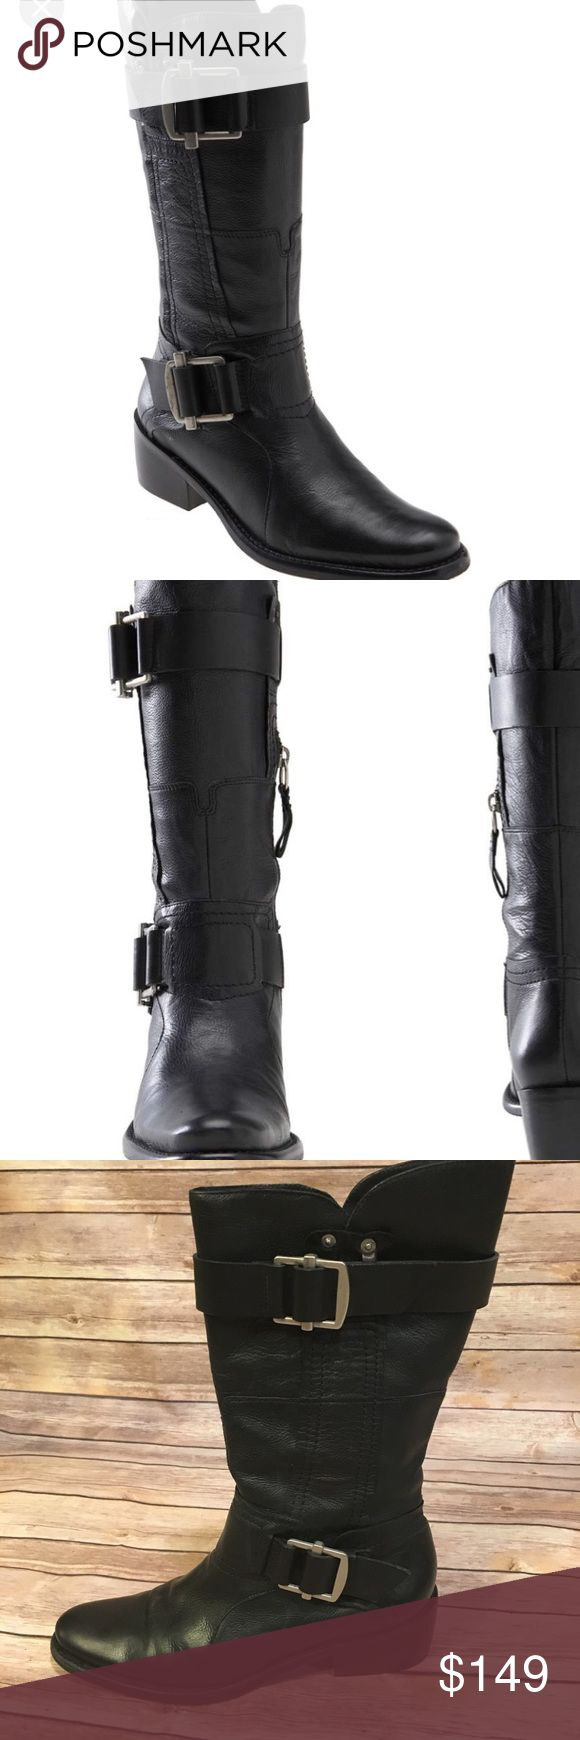 """Vera Wang Lavender Label Leather biker boots Black biker boot """"Chantel"""" 100% leather. Wide buckle straps gives it a stylish edgy biker look. Dipped collar and thick block heel. Pull on style with partial side zipper. Heel height approx 1 3/4"""" Vera Wang Lavender Label Shoes Combat & Moto Boots"""